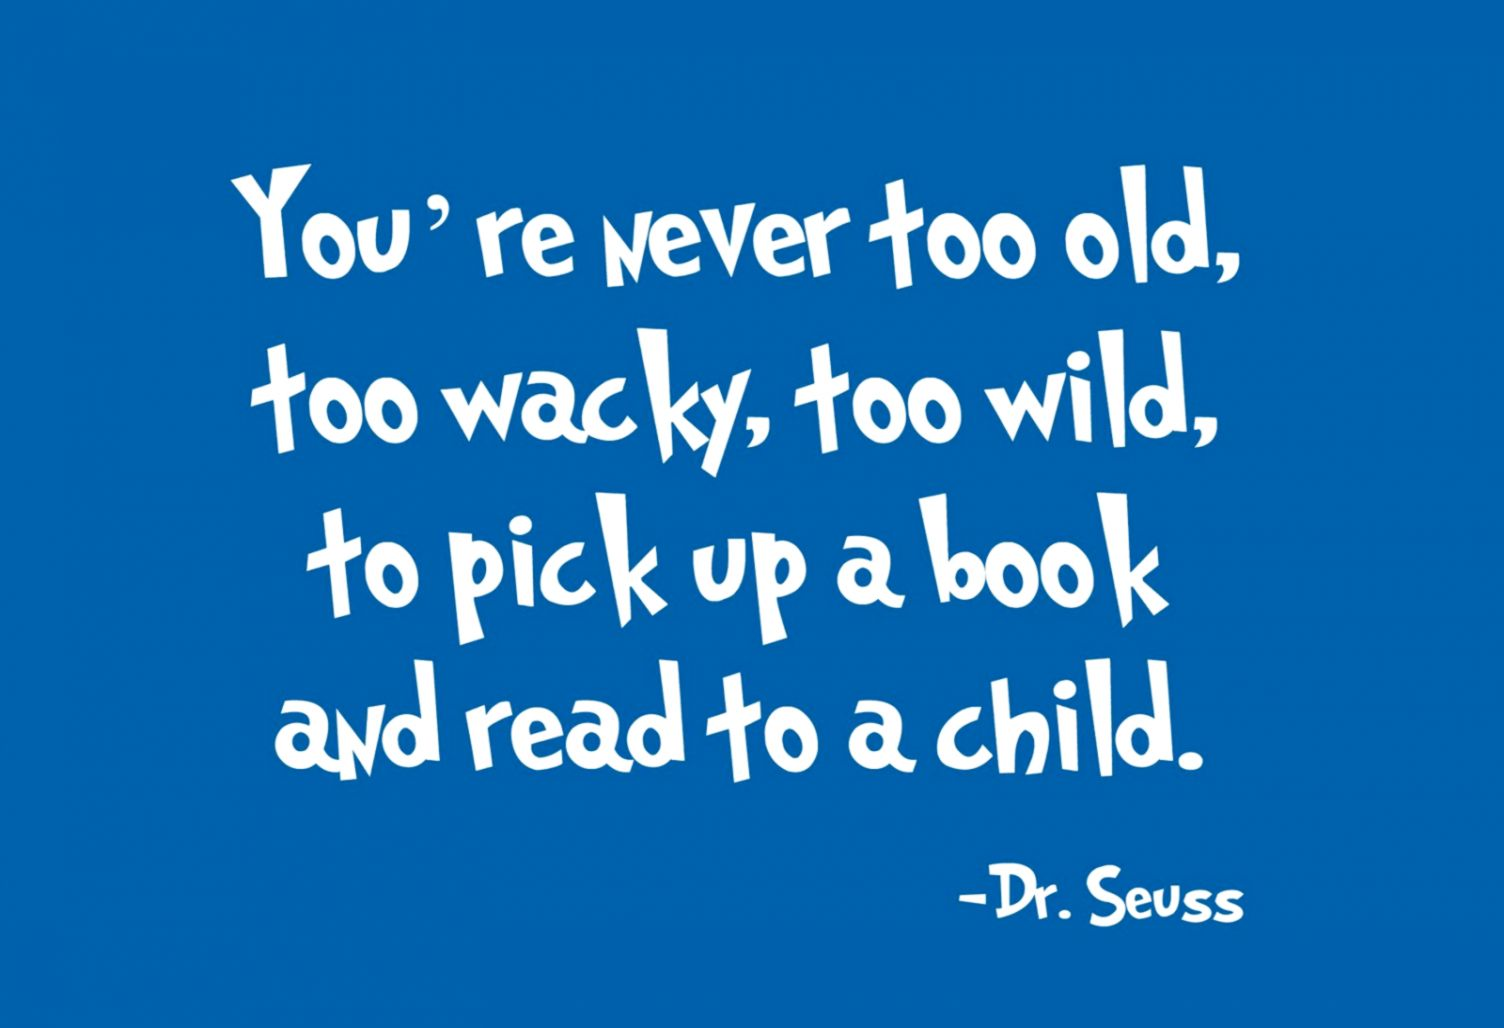 Quotes Famous Dr Seuss | Decor di Design